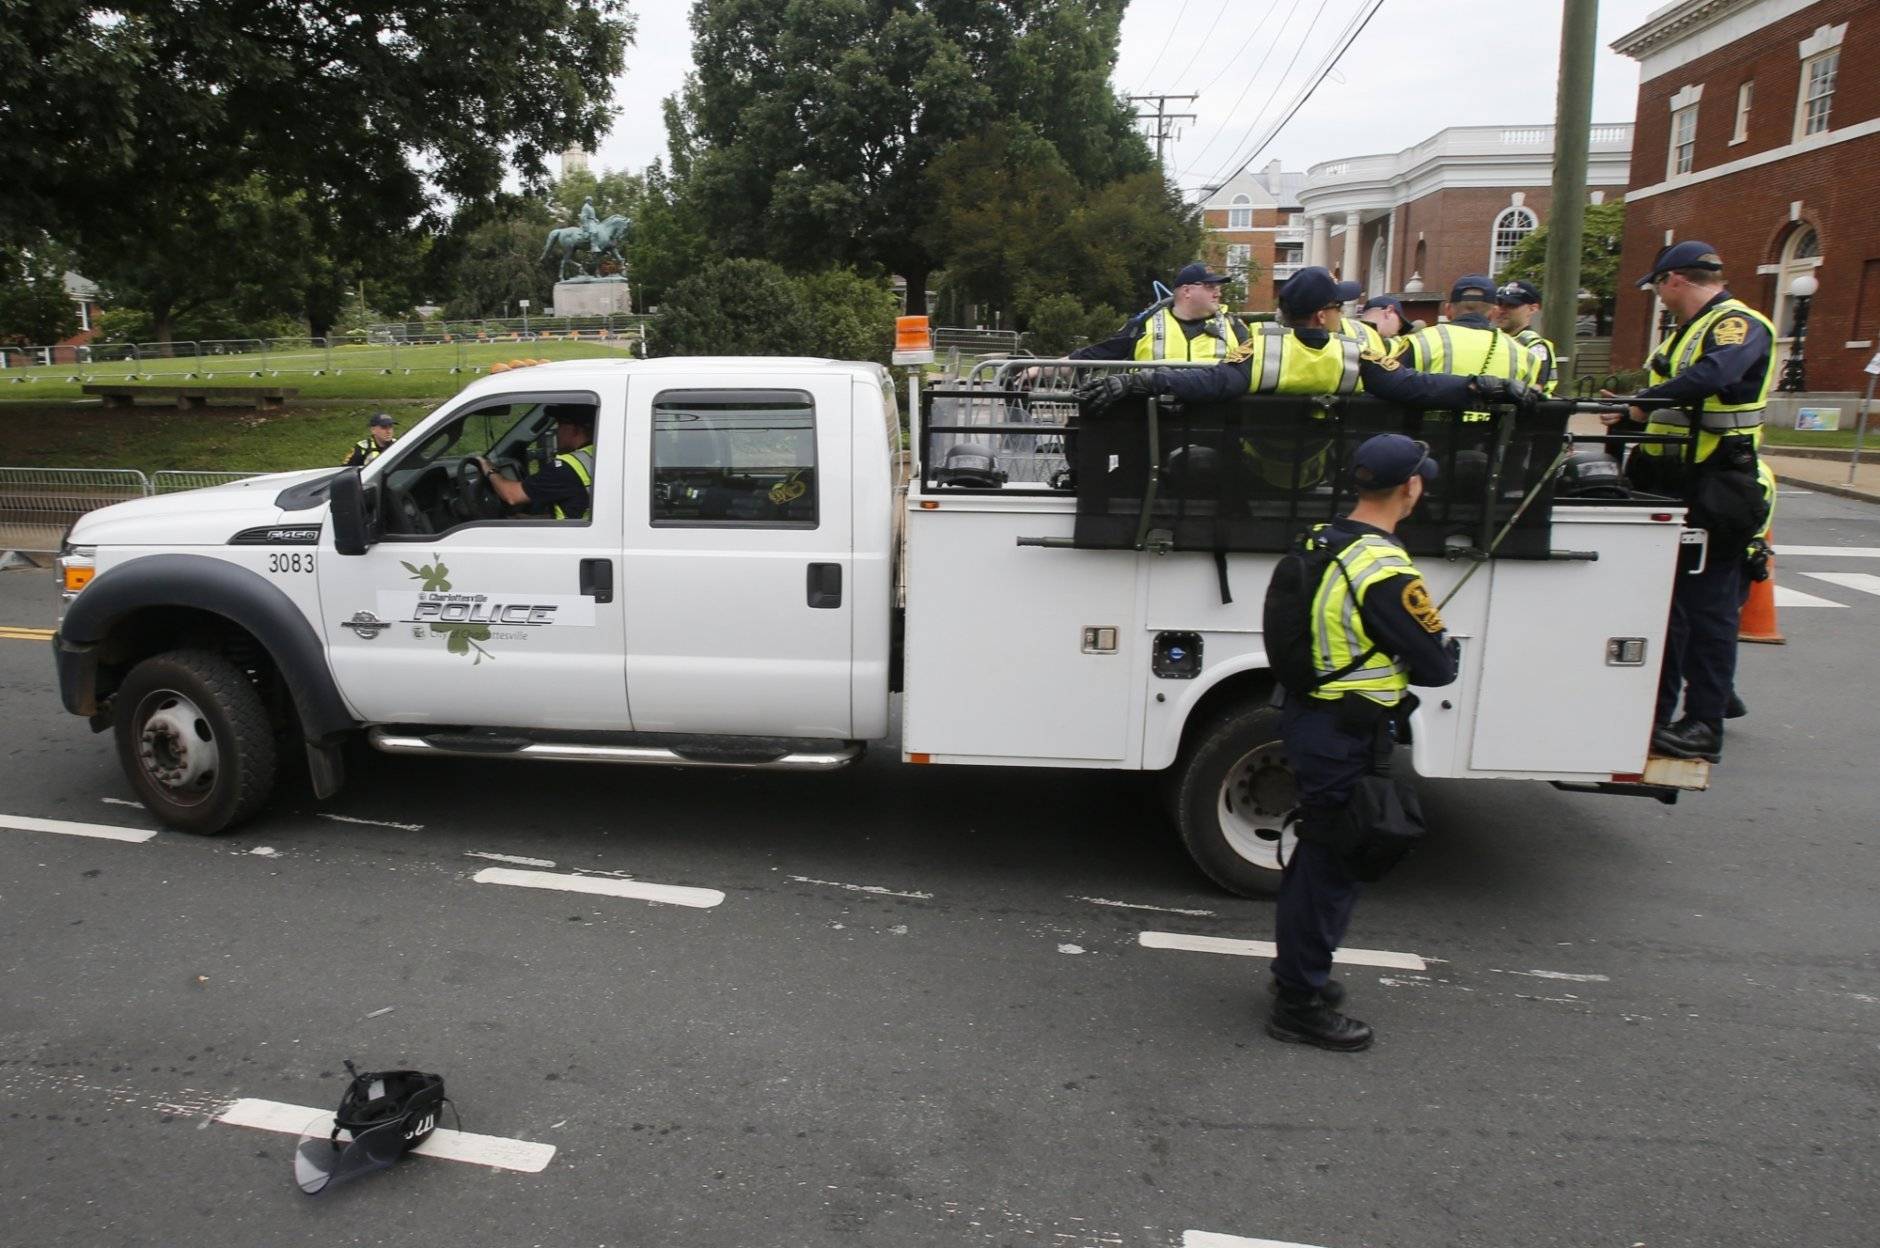 State Police patrol the road in front of Market Street park with the state of Confederate General Robert E. Lee as they lock down the downtown area in anticipation of the anniversary of last year's Unite the Right rally in Charlottesville, Va., Saturday, Aug. 11, 2018. The Governor has declared a state of emergency in Charlottesville. (AP Photo/Steve Helber)